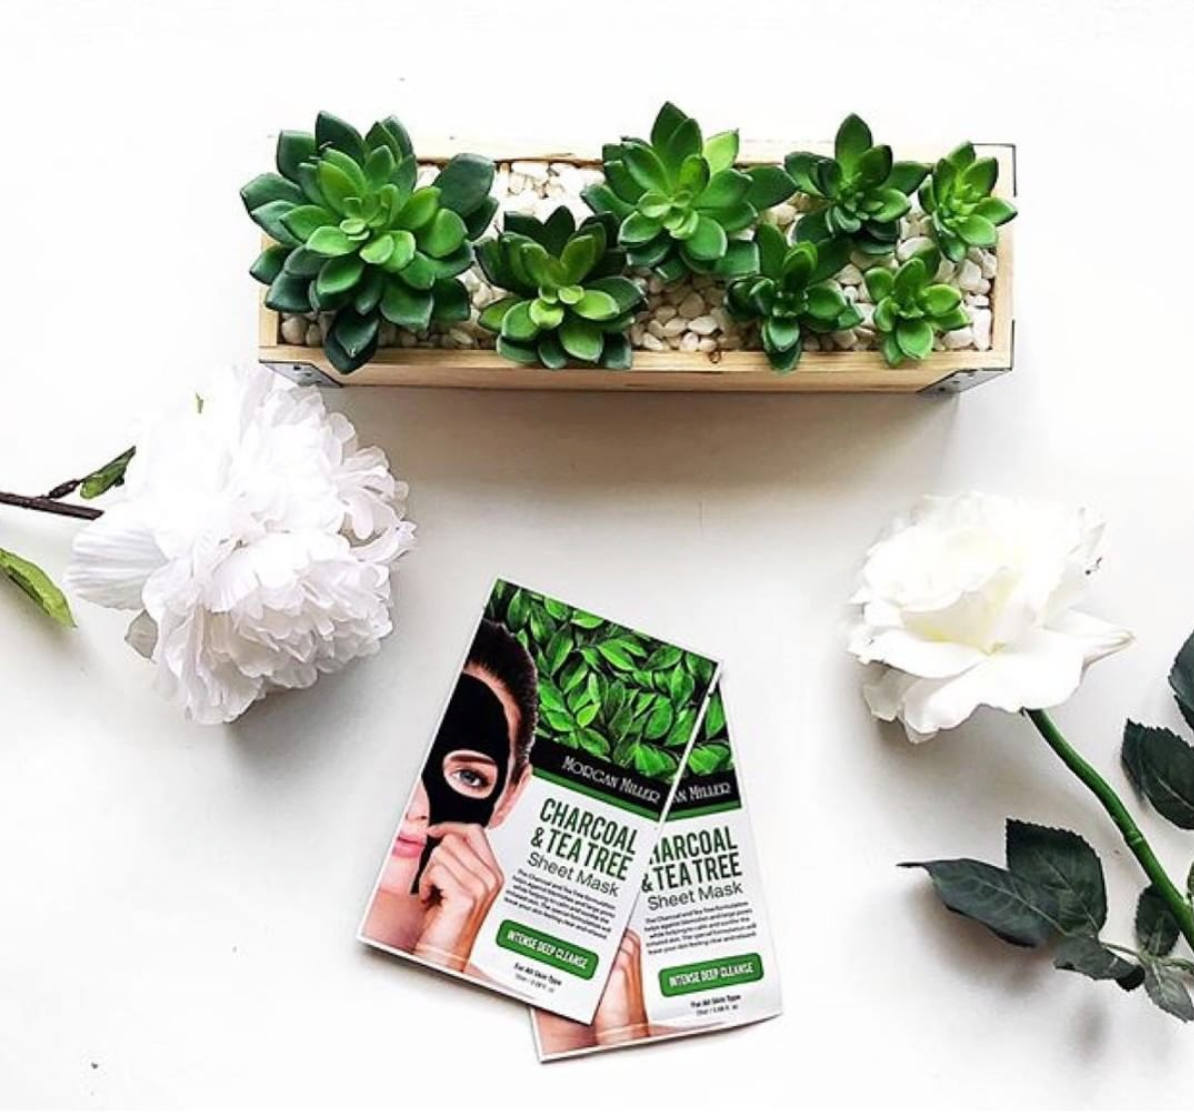 Flatlay view of Morgan Miller's Charcoal & Tea Tree Sheet Masks with flowers